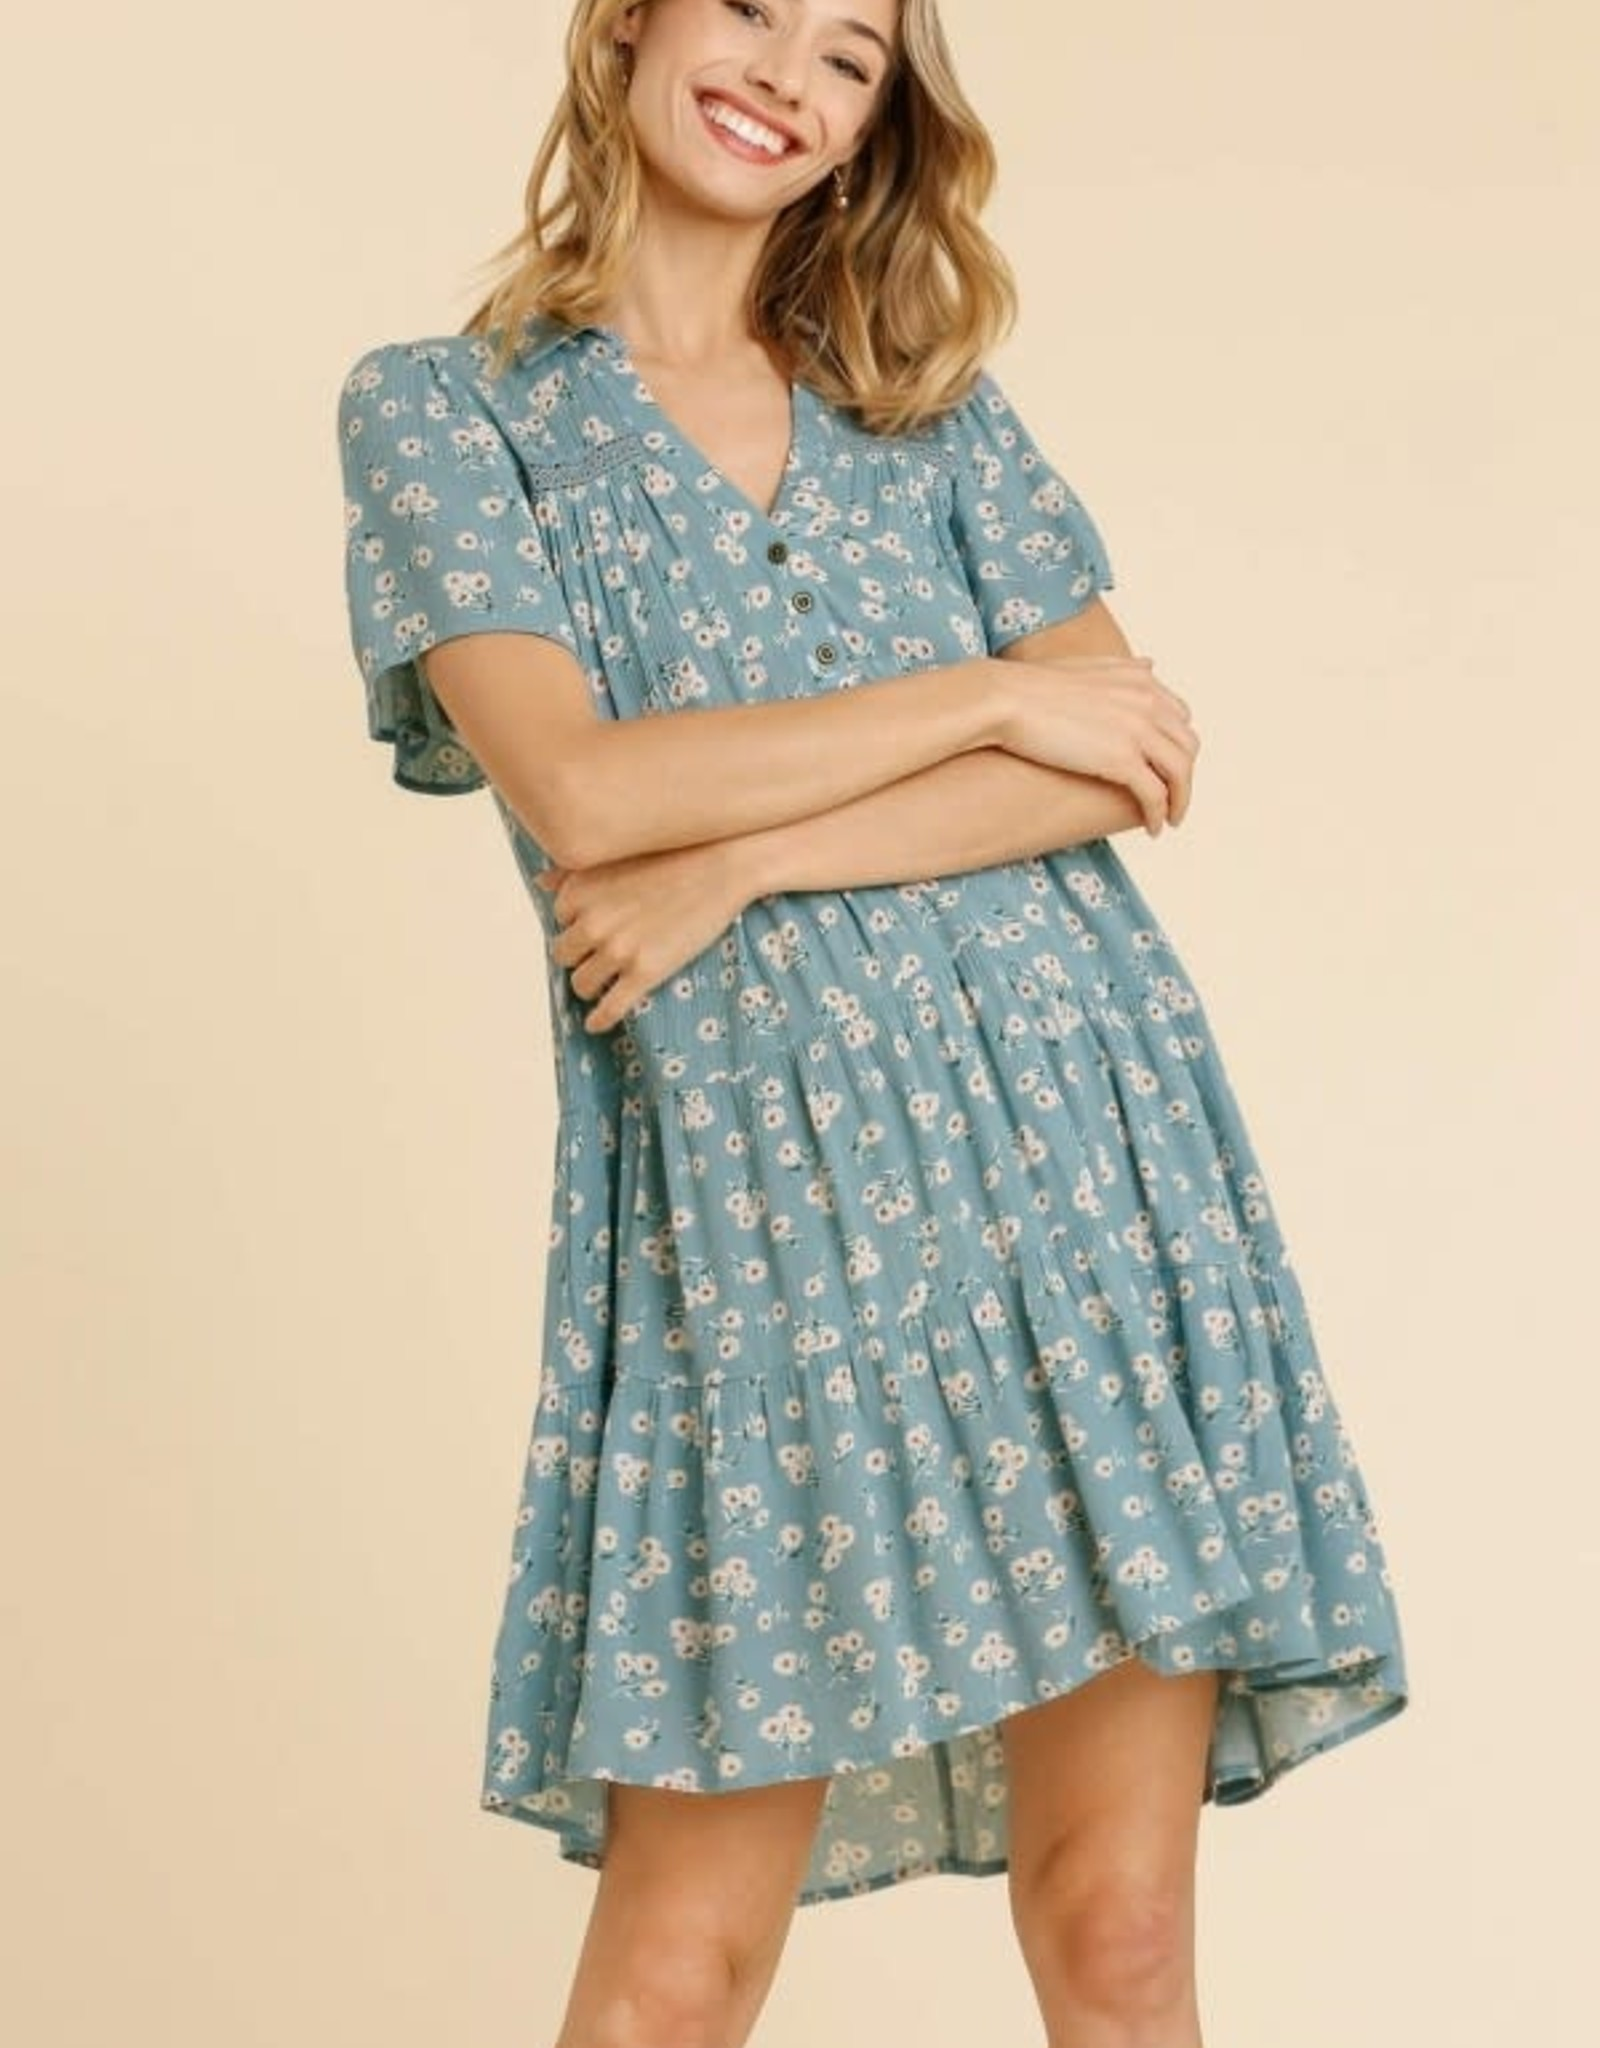 Miss Bliss Floral Print Collar Tiered Dress- Sky